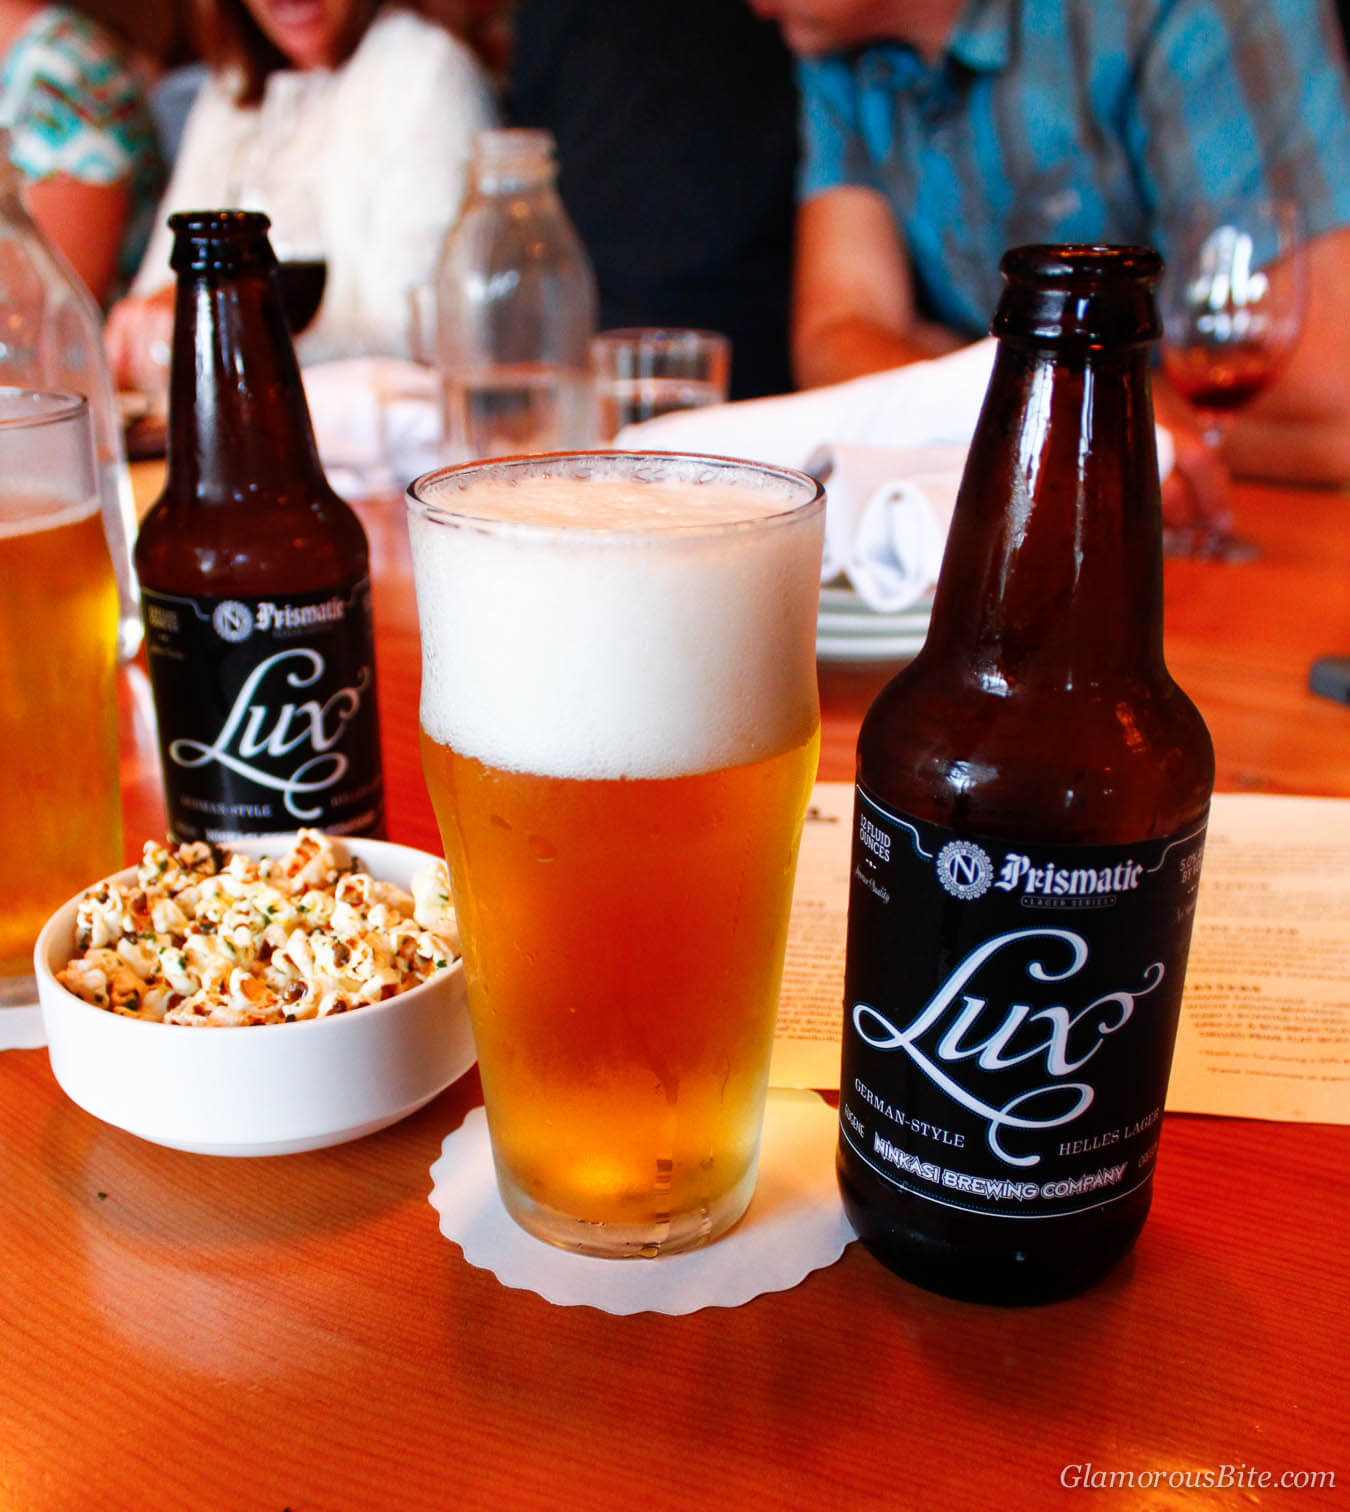 Lux Beer The Lark Santa Barbara